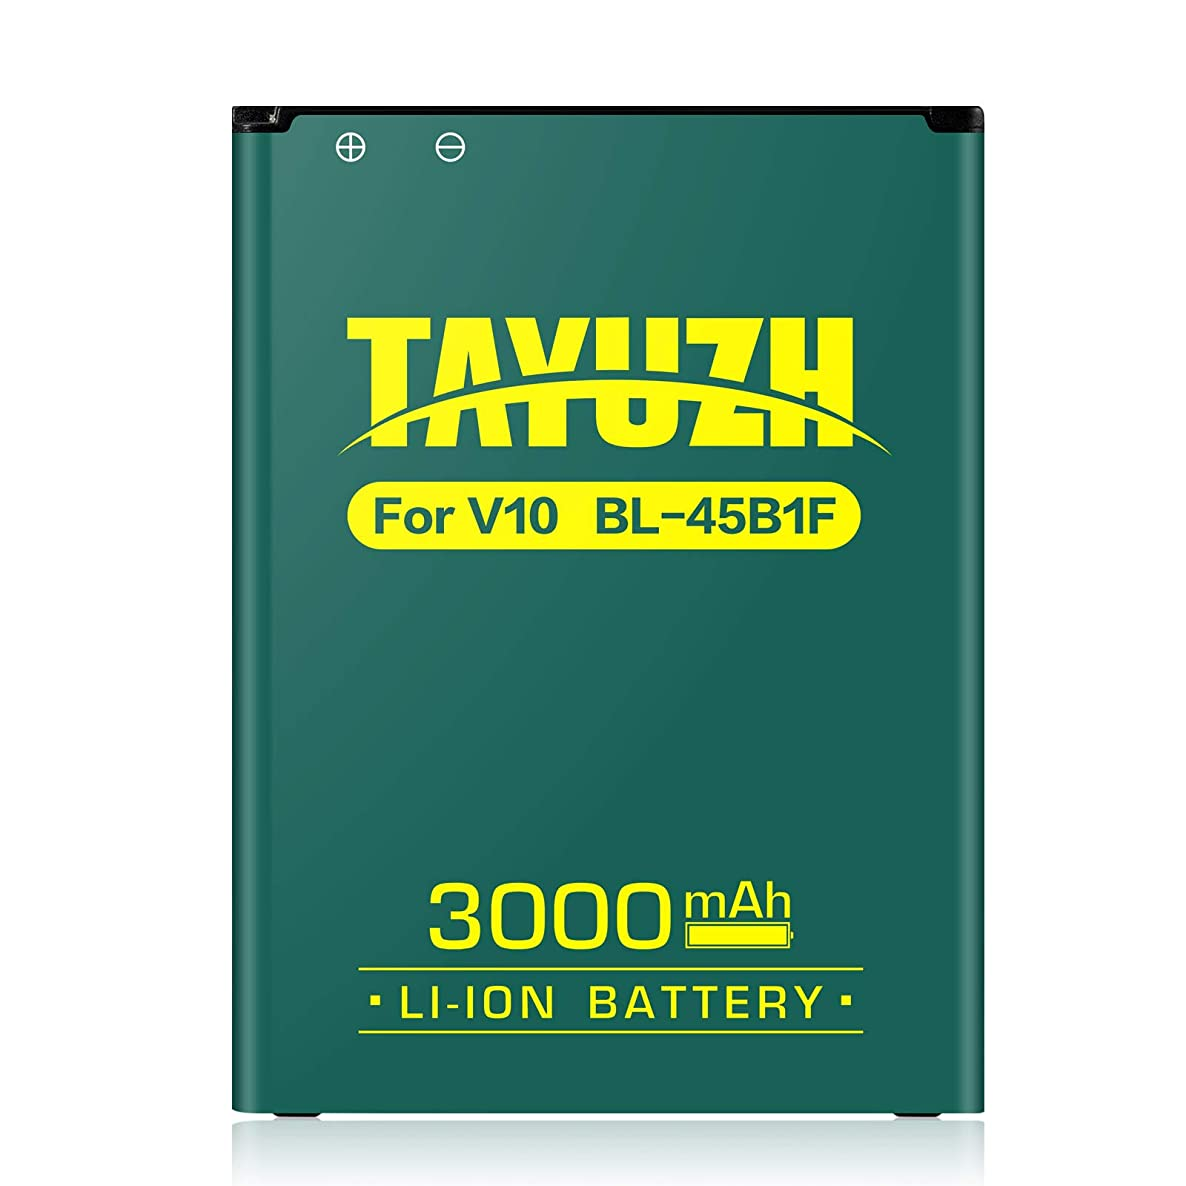 LG V10 Battery, TAYUZH 3000mAh Replacement BL-45B1F Li-ion Battery for LG V10 Stylo 2, H900 AT&T, VS990 Verizon, H901T-Mobile, LS992 Sprint, H960A, H961N   V10 Spare Battery [24 Month Warranty]